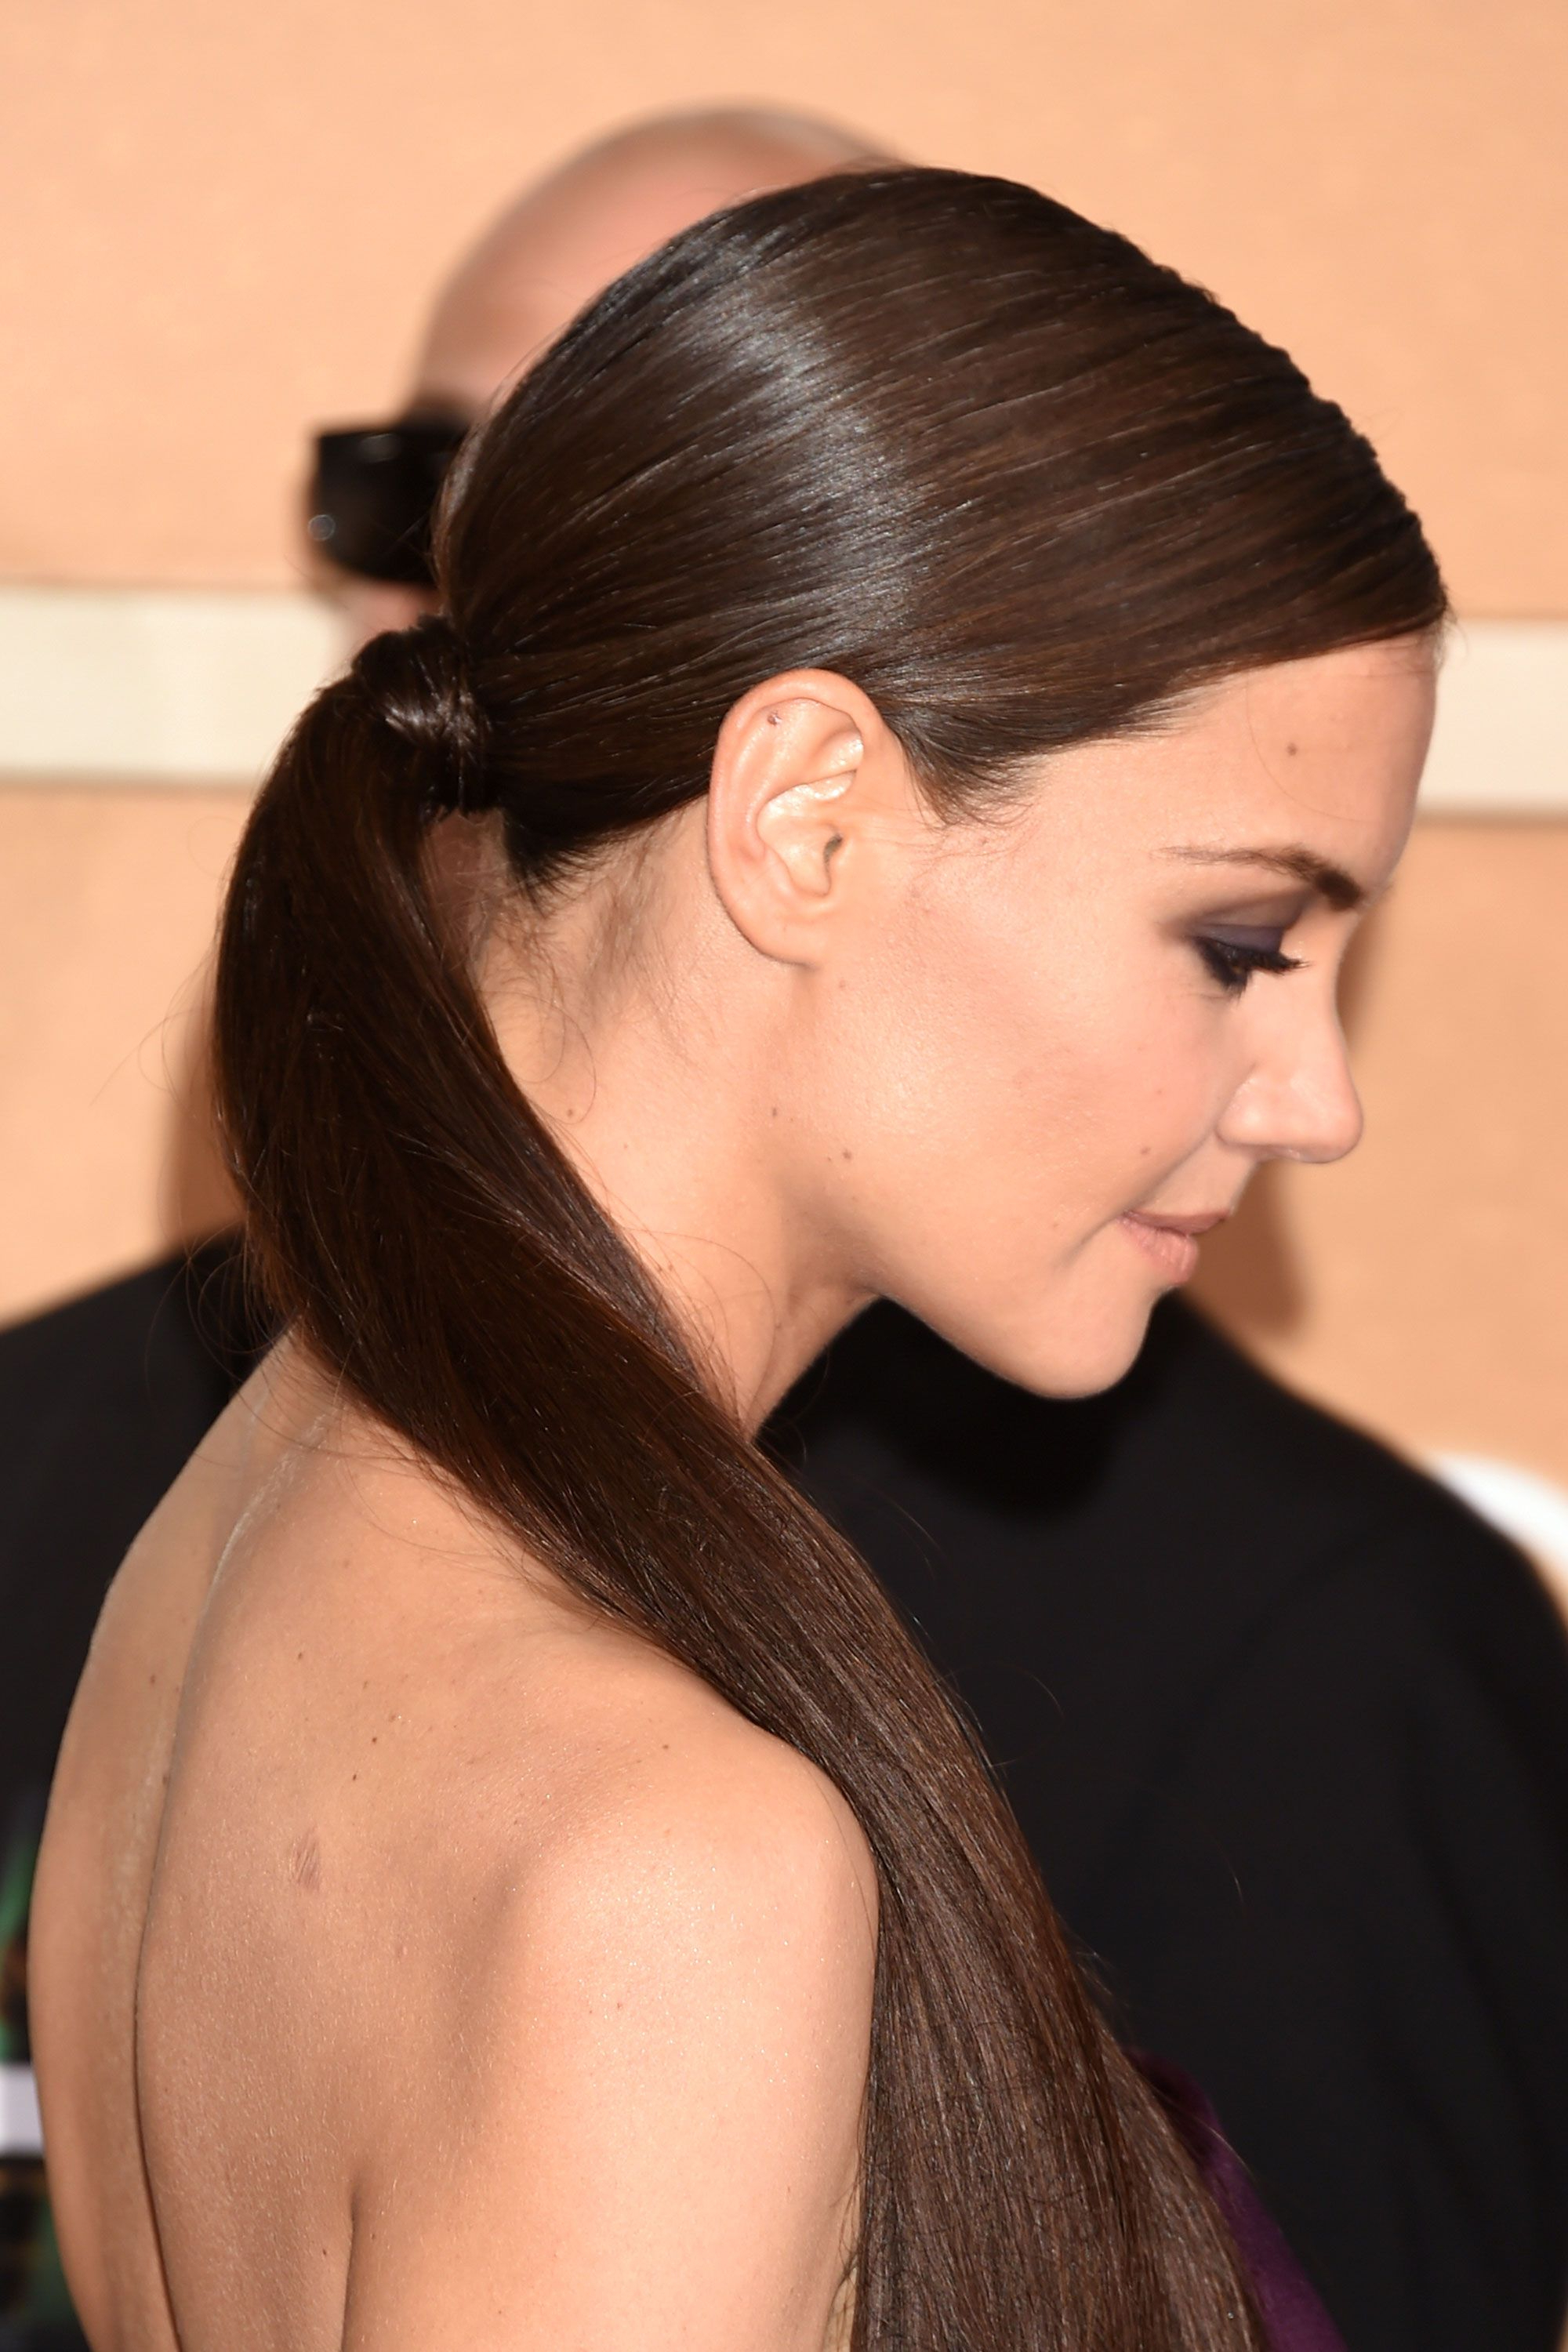 40 Ponytail Hairstyles For 2017 – Best Ideas For Ponytails In Preferred Fancy Flowing Ponytail Hairstyles For Wedding (View 3 of 20)